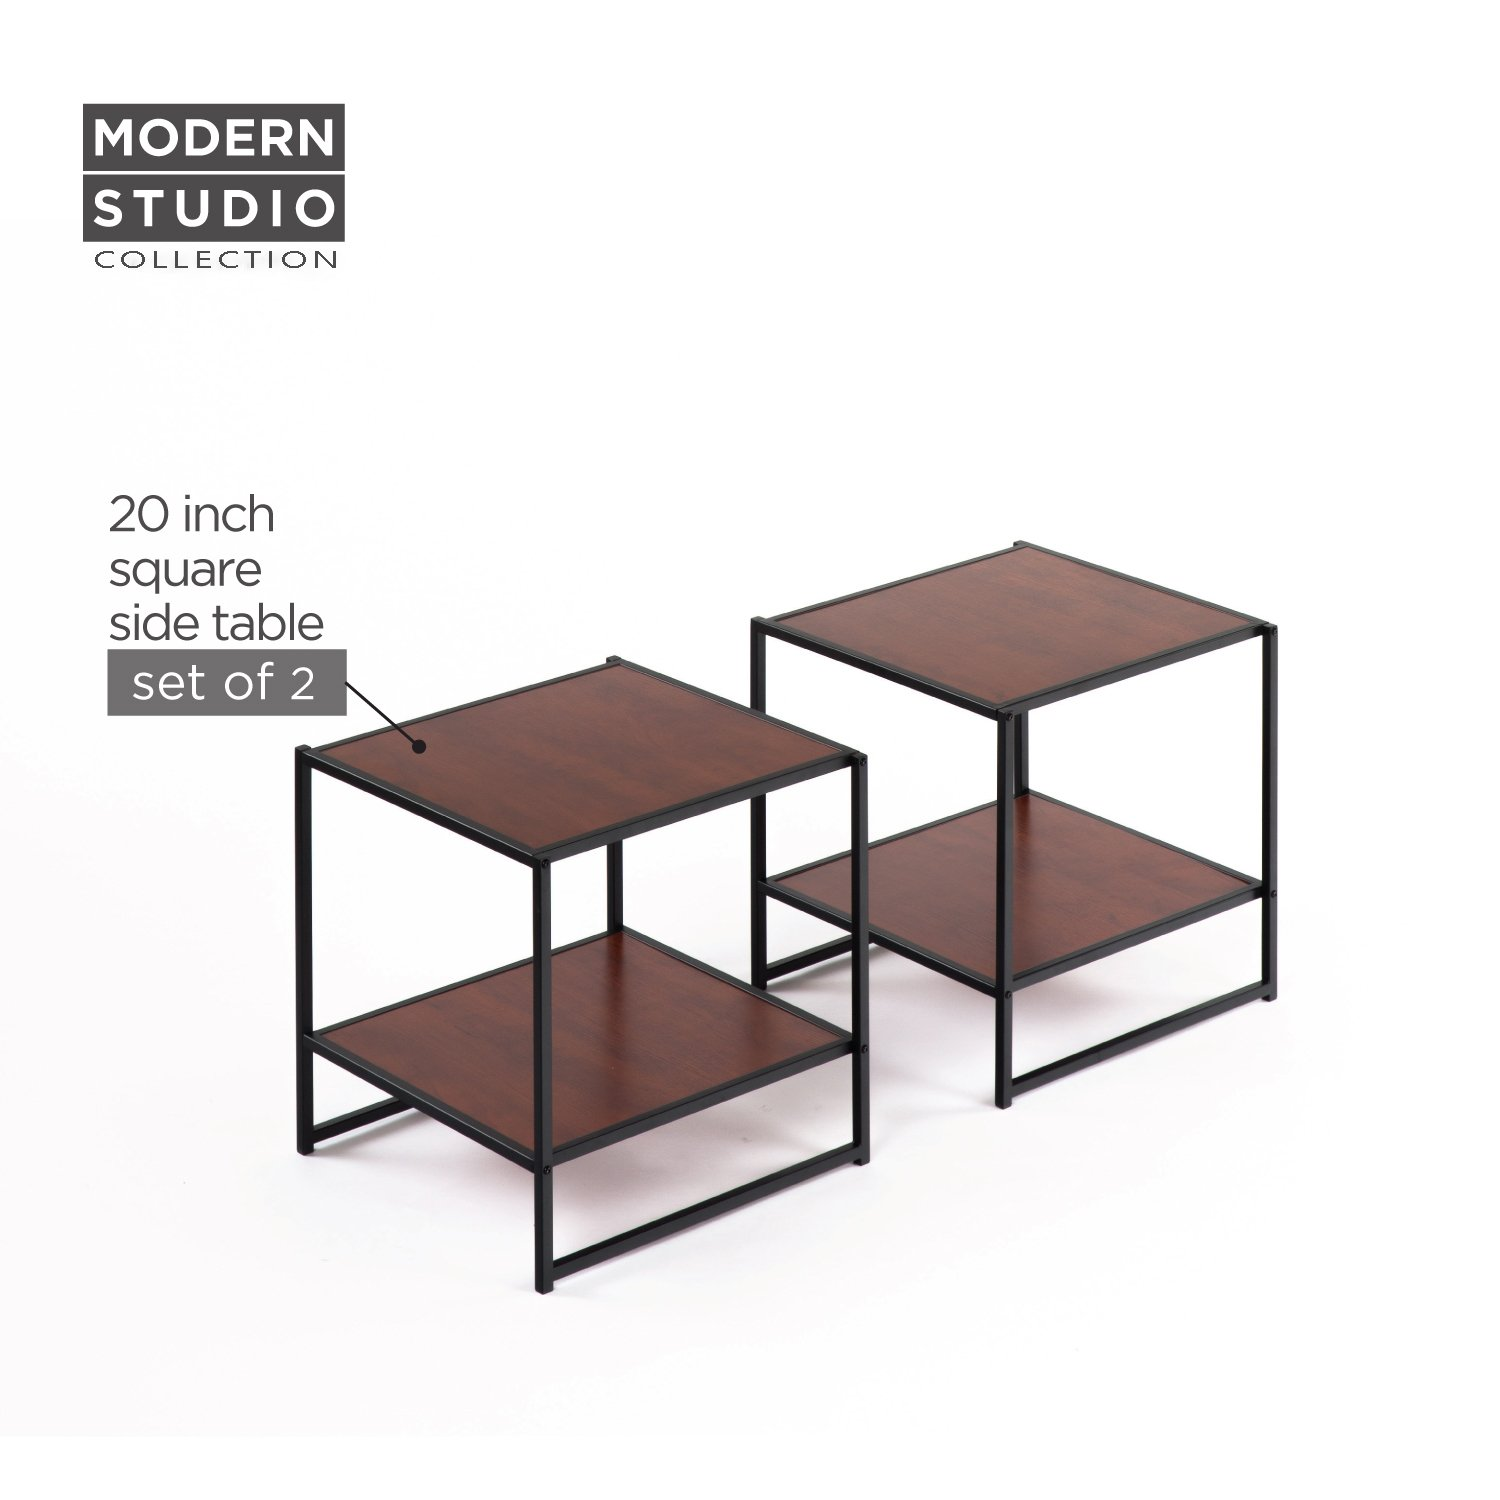 zinus modern studio collection set two inch square accent table collections side end tables night stands kitchen dining narrow nightstand with drawers very small furniture paper